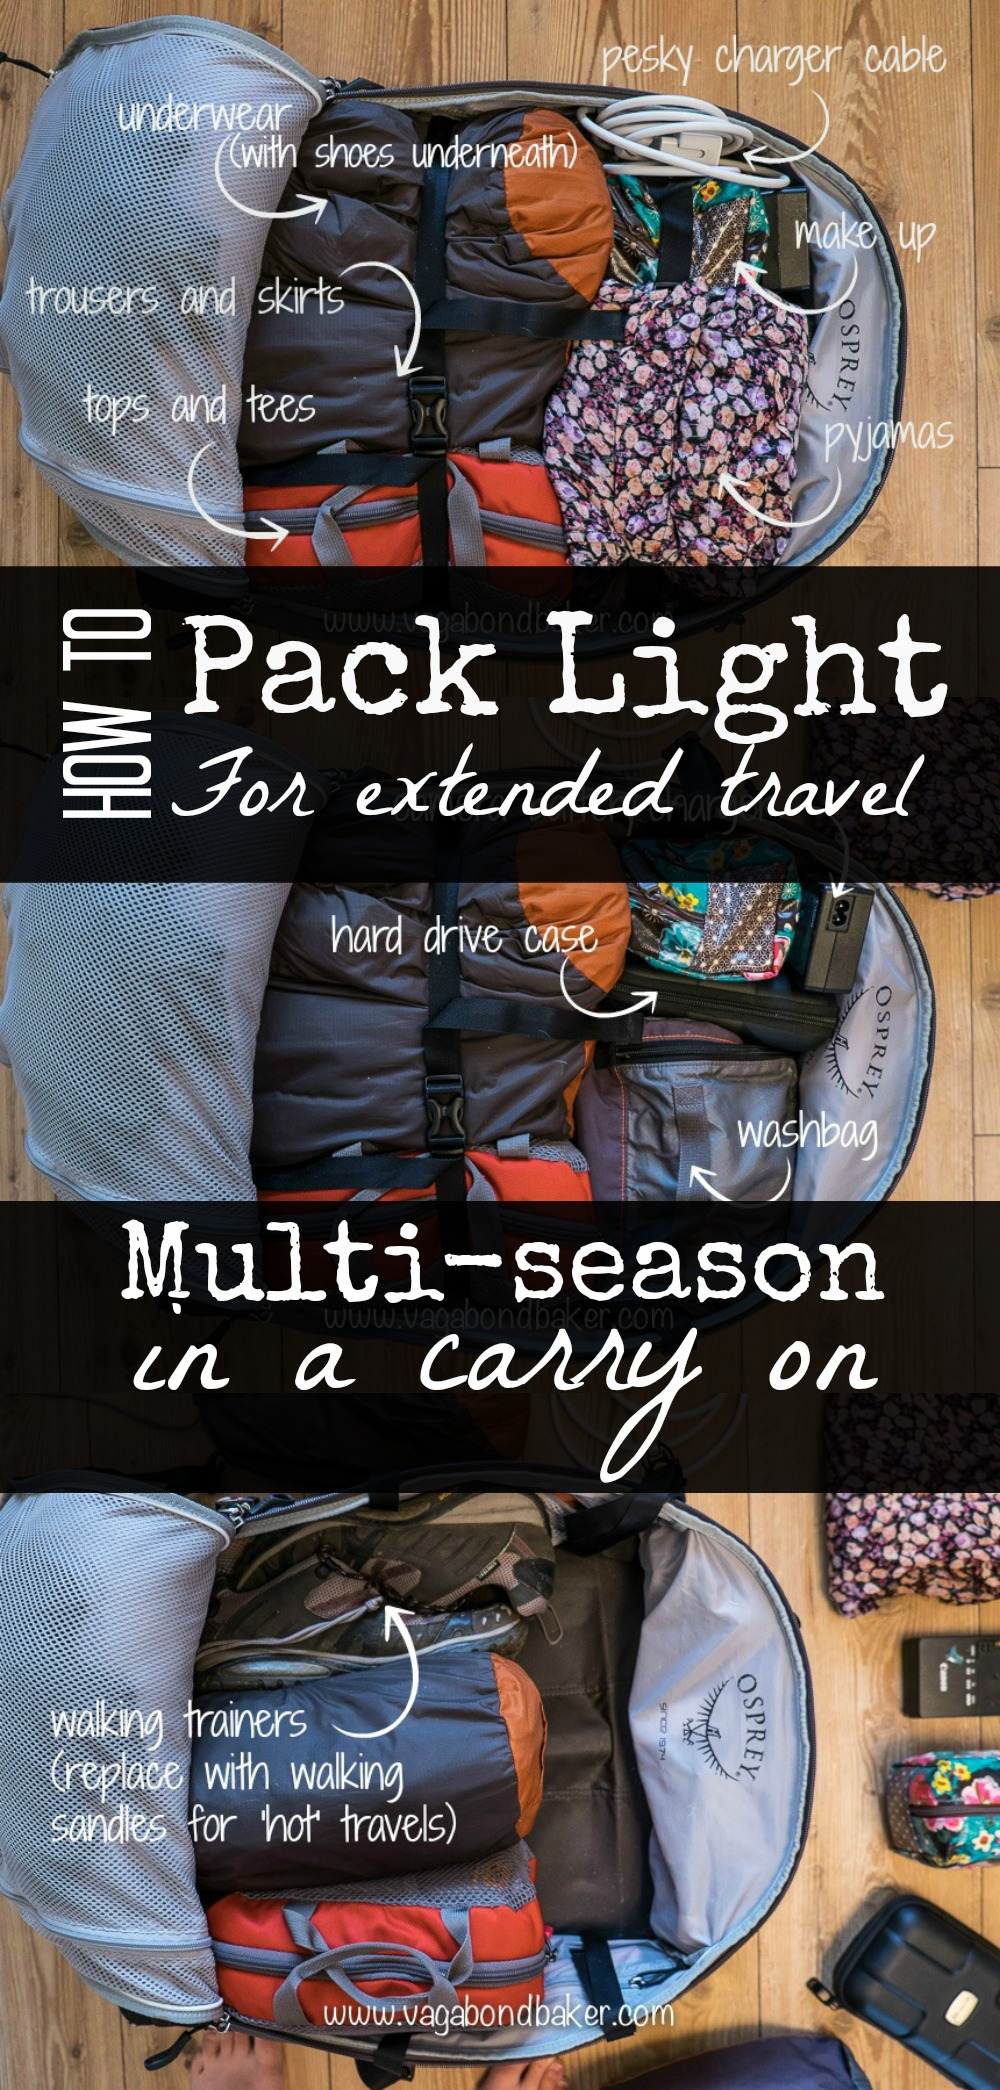 How to Pack Light For Extended Travel // Carry on